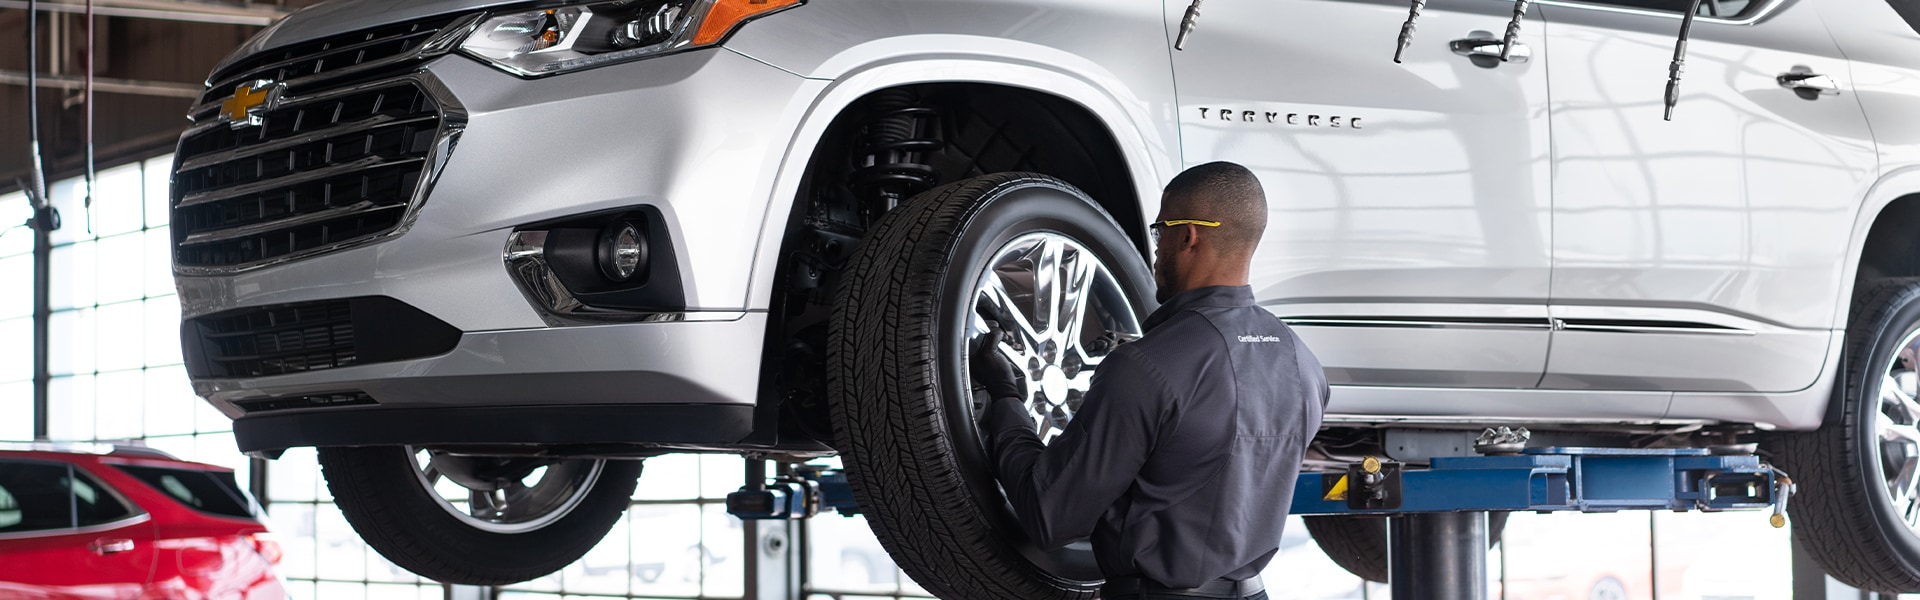 C3 Main Benefits of Using OEM parts for your vehicle at Chevrolet of New Bern | Chevrolet service technician changing tire on silver 2020 Chevrolet Traverse